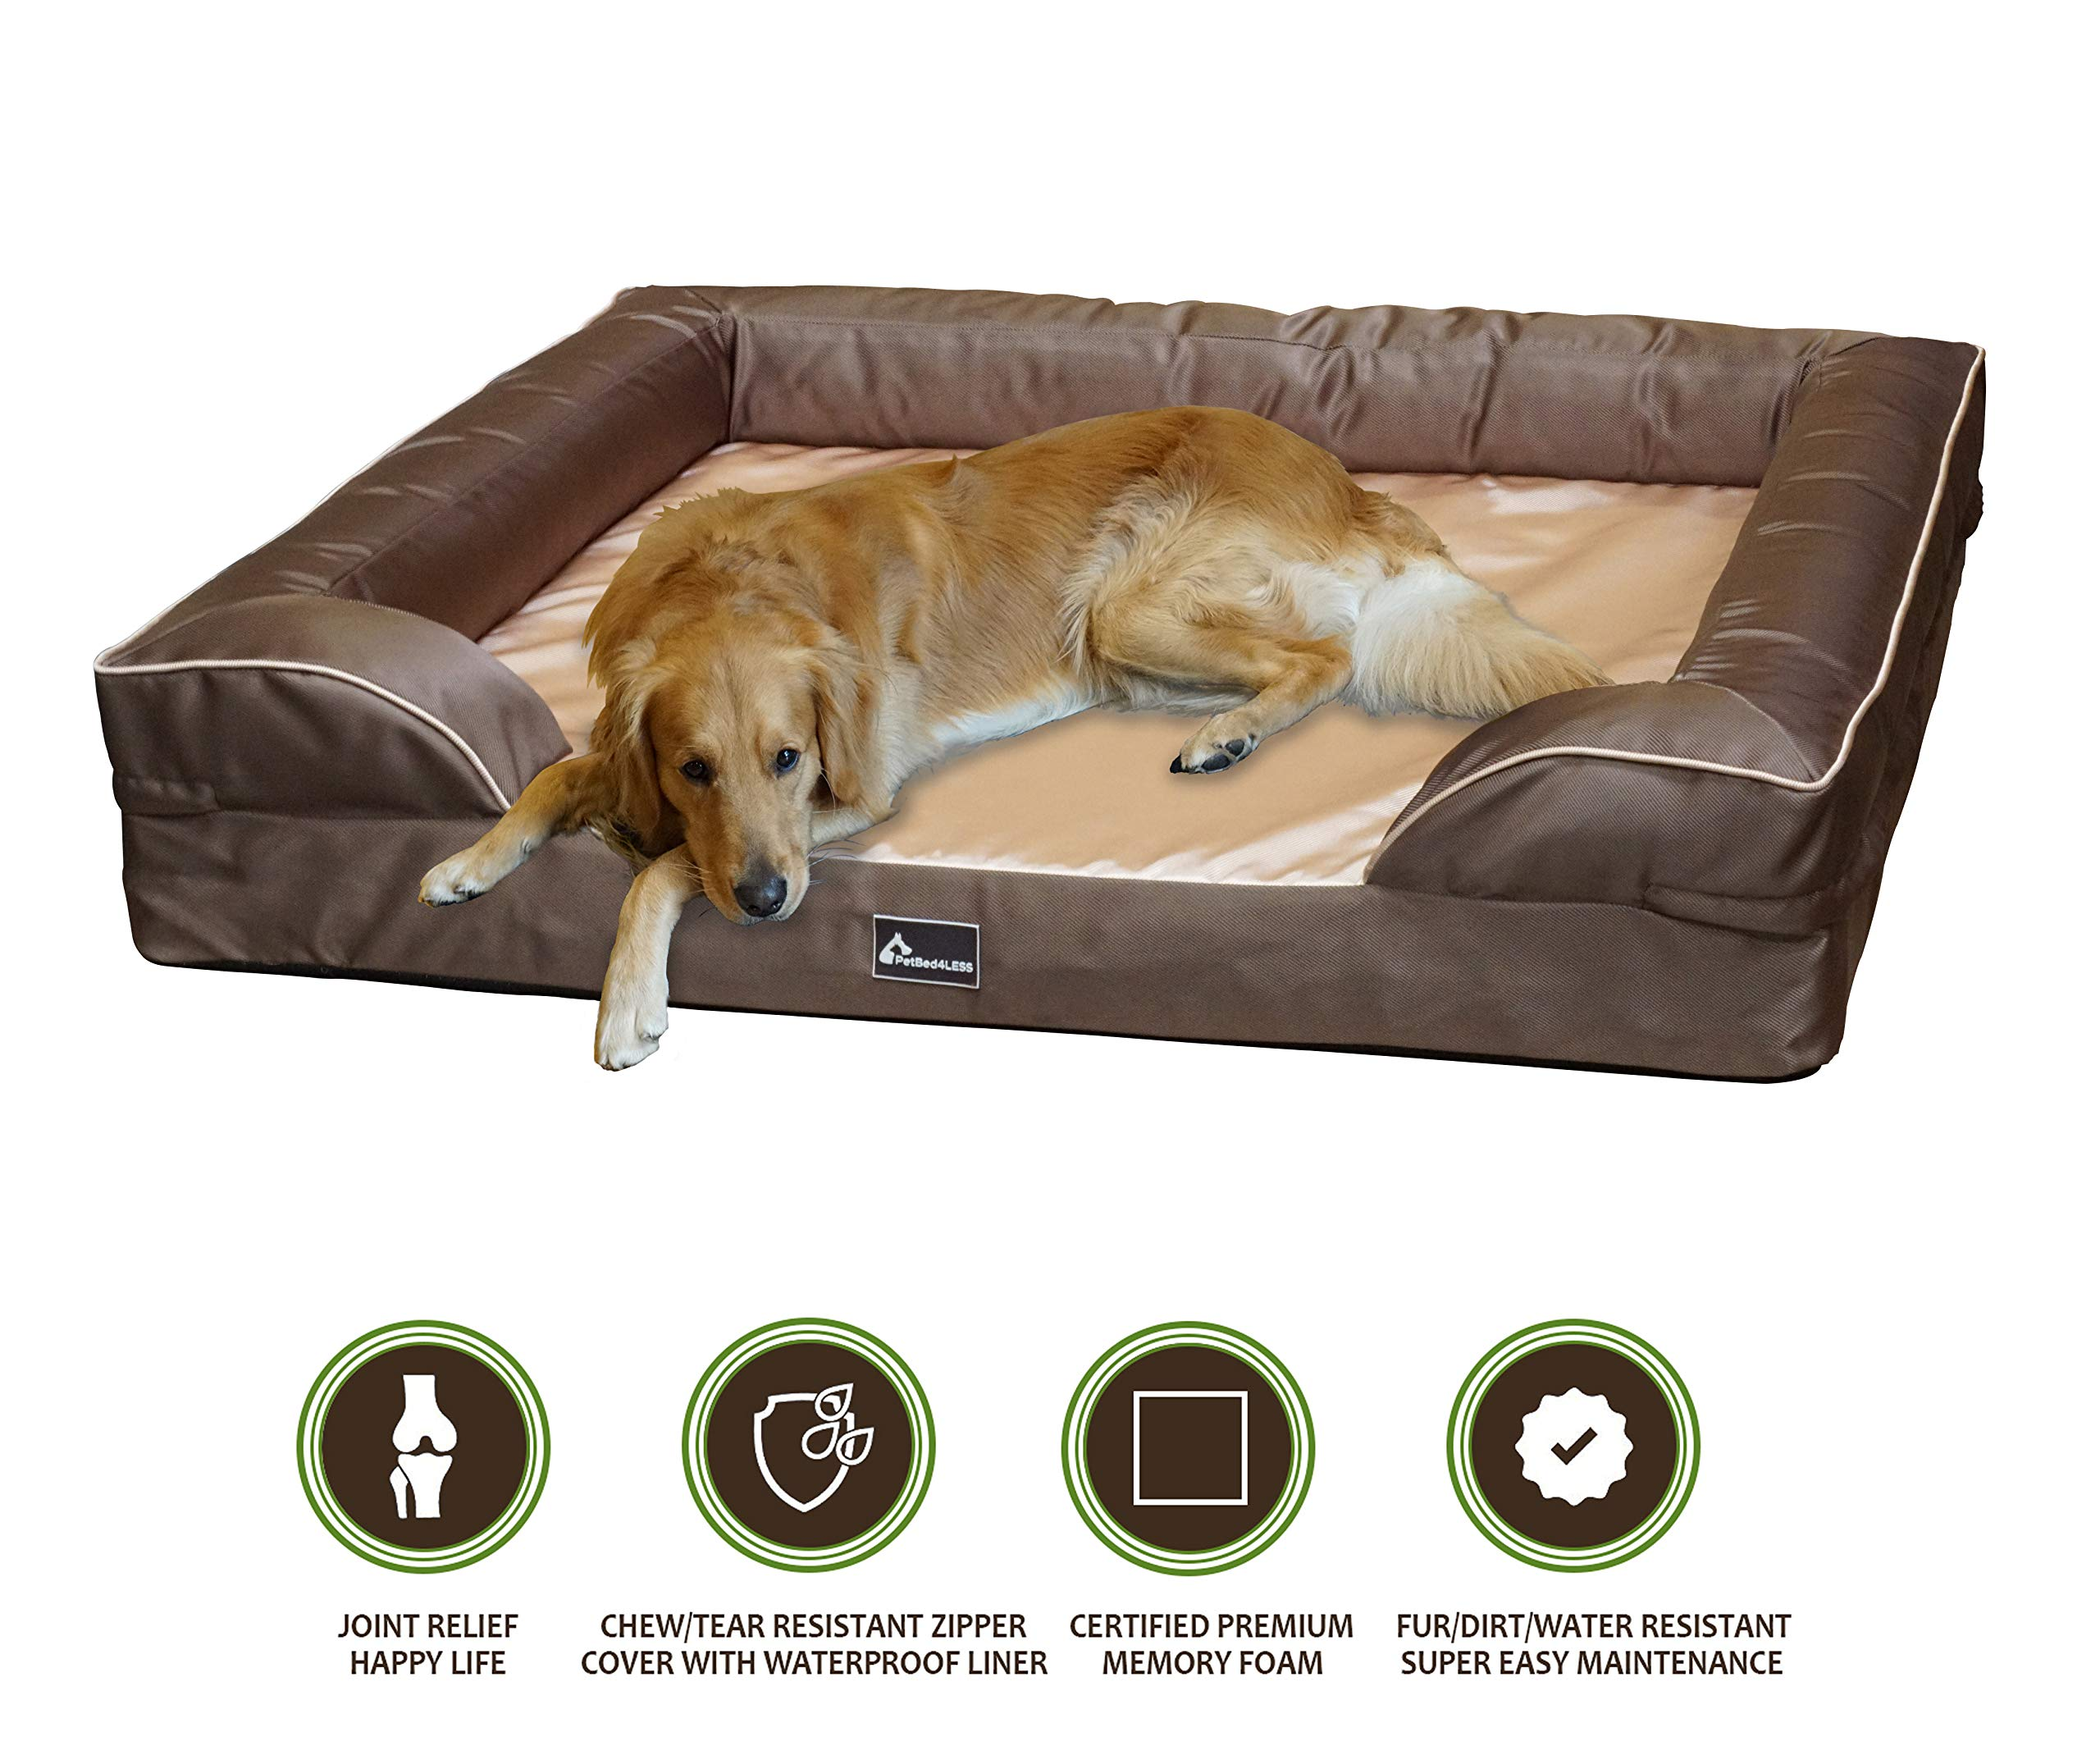 PetBed4Less Deluxe Dog Bed Sofa & Lounge w/Premium Orthopedic Memory Foam and Heavy Duty Removable Zipper Cover + Free Bonus Waterproof Liner [Replacement Zipper Covers Available]